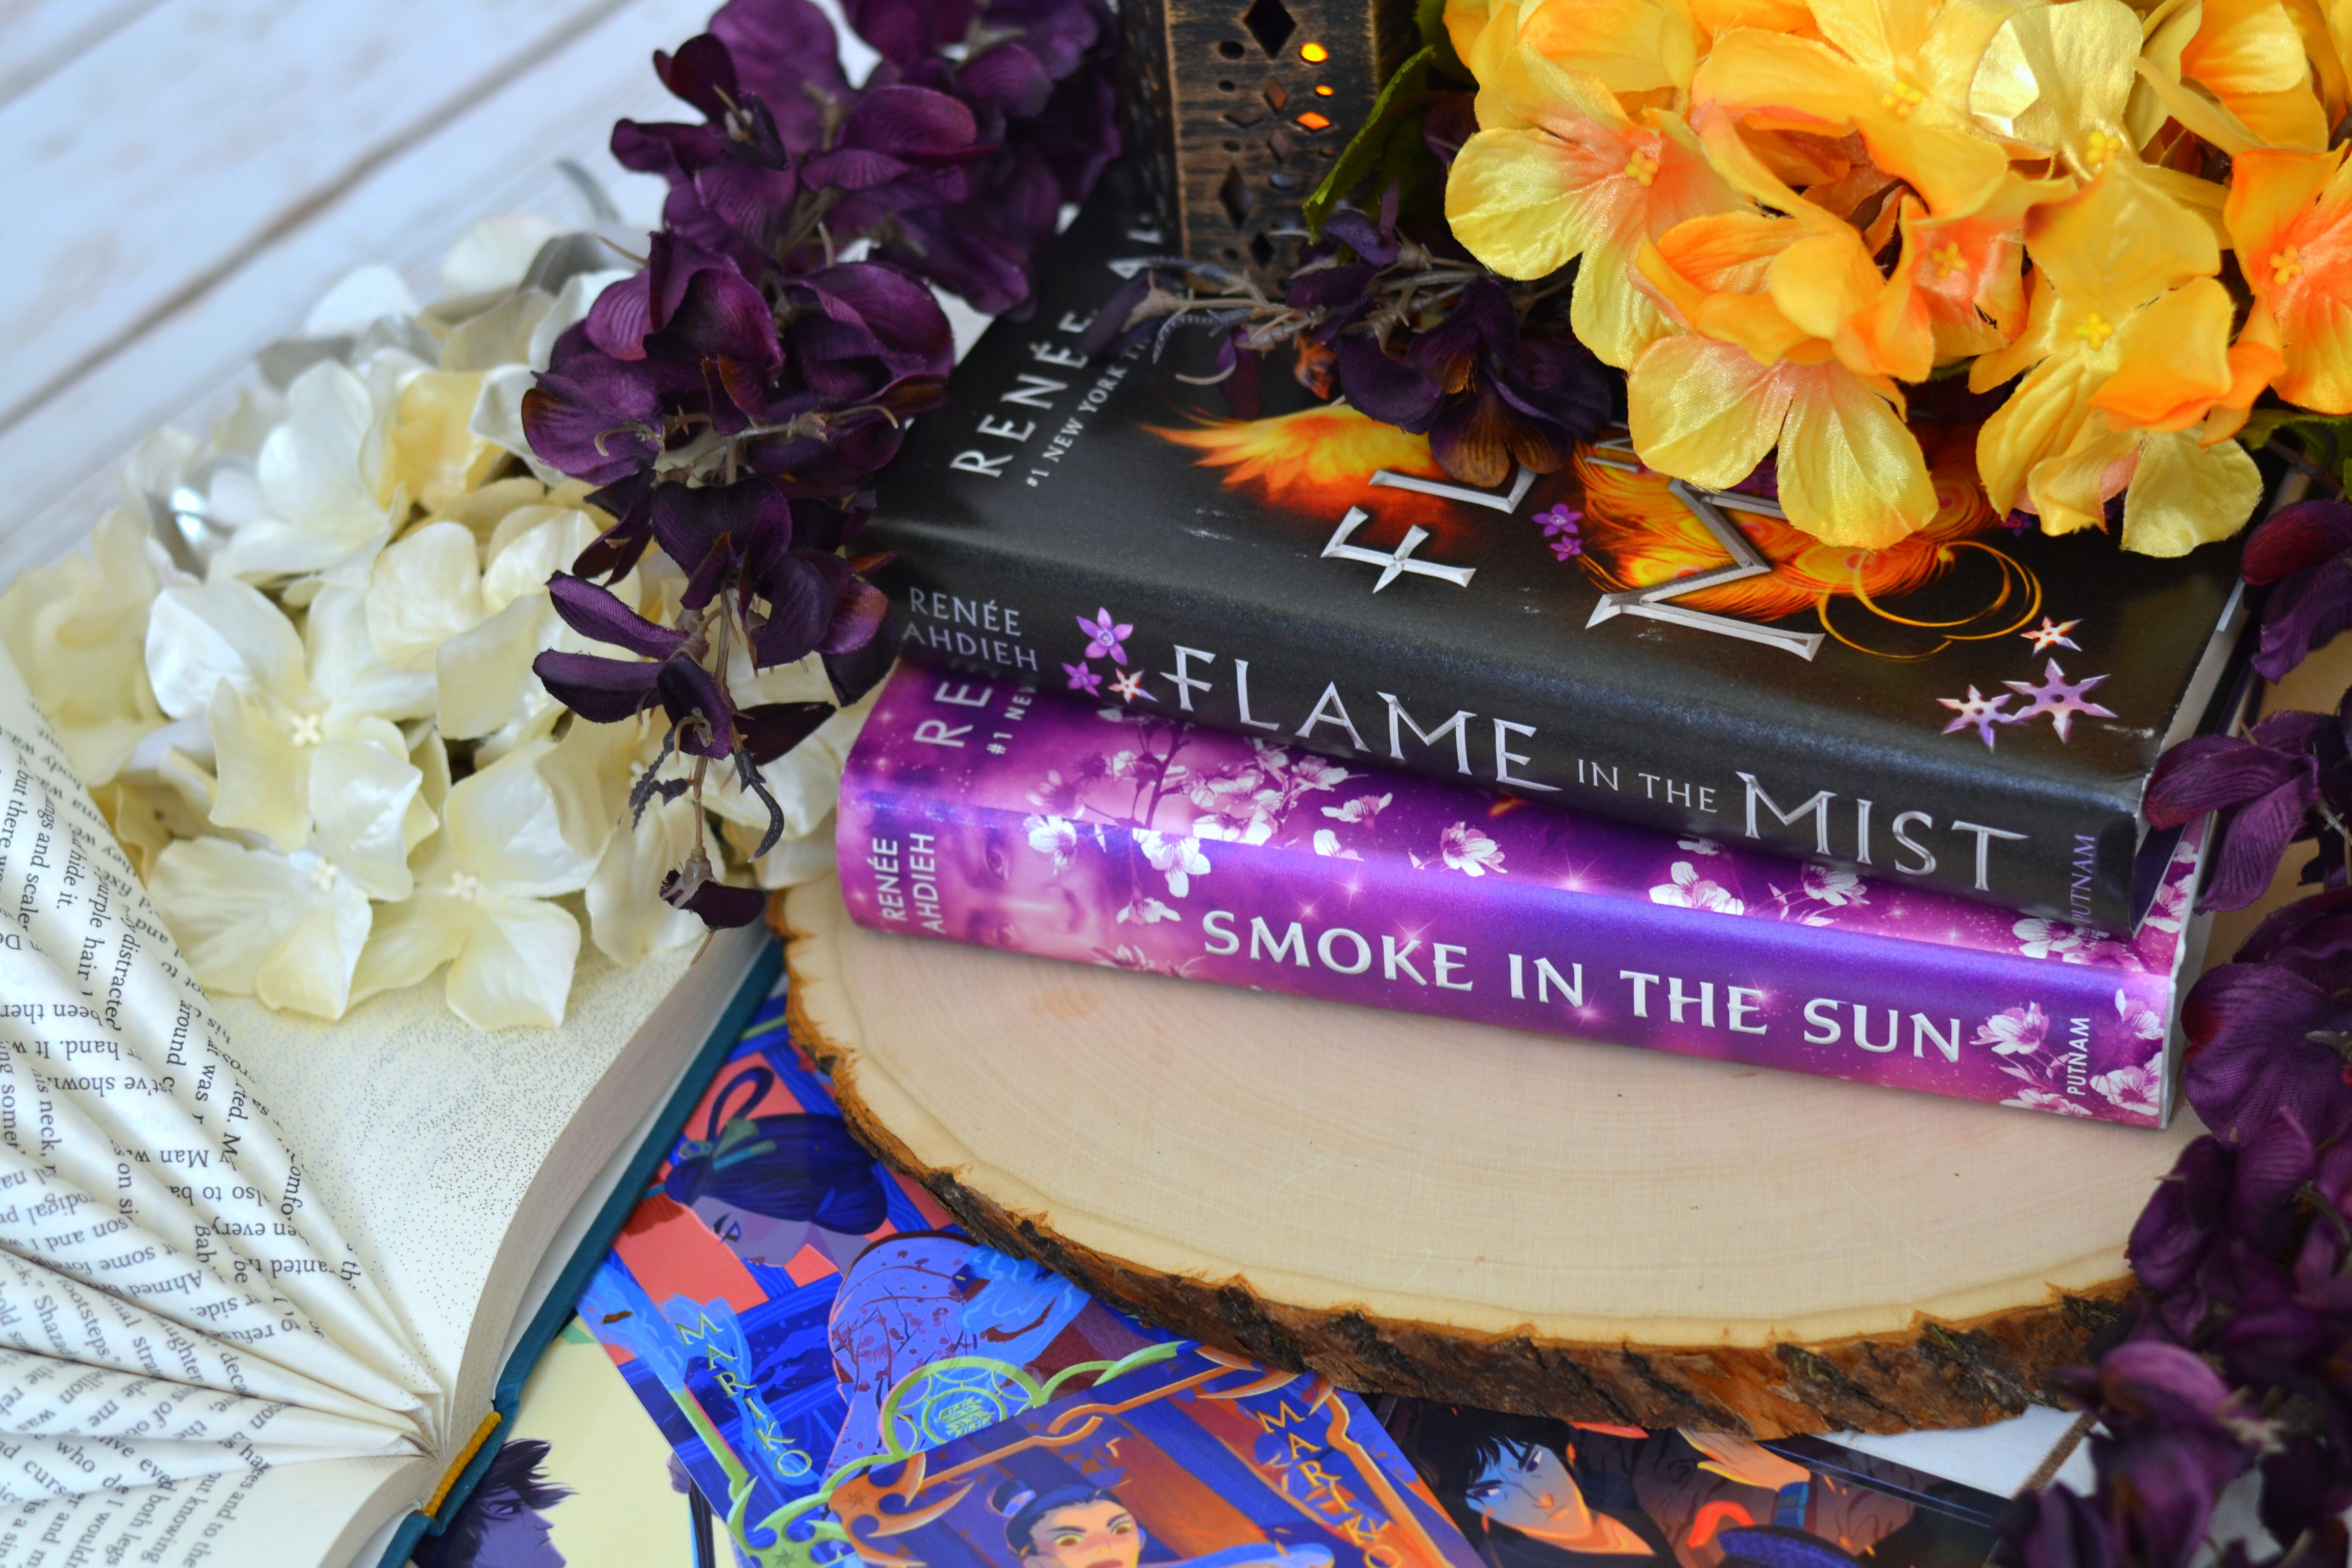 Flame in the Mist by Renee Ahdieh | Review